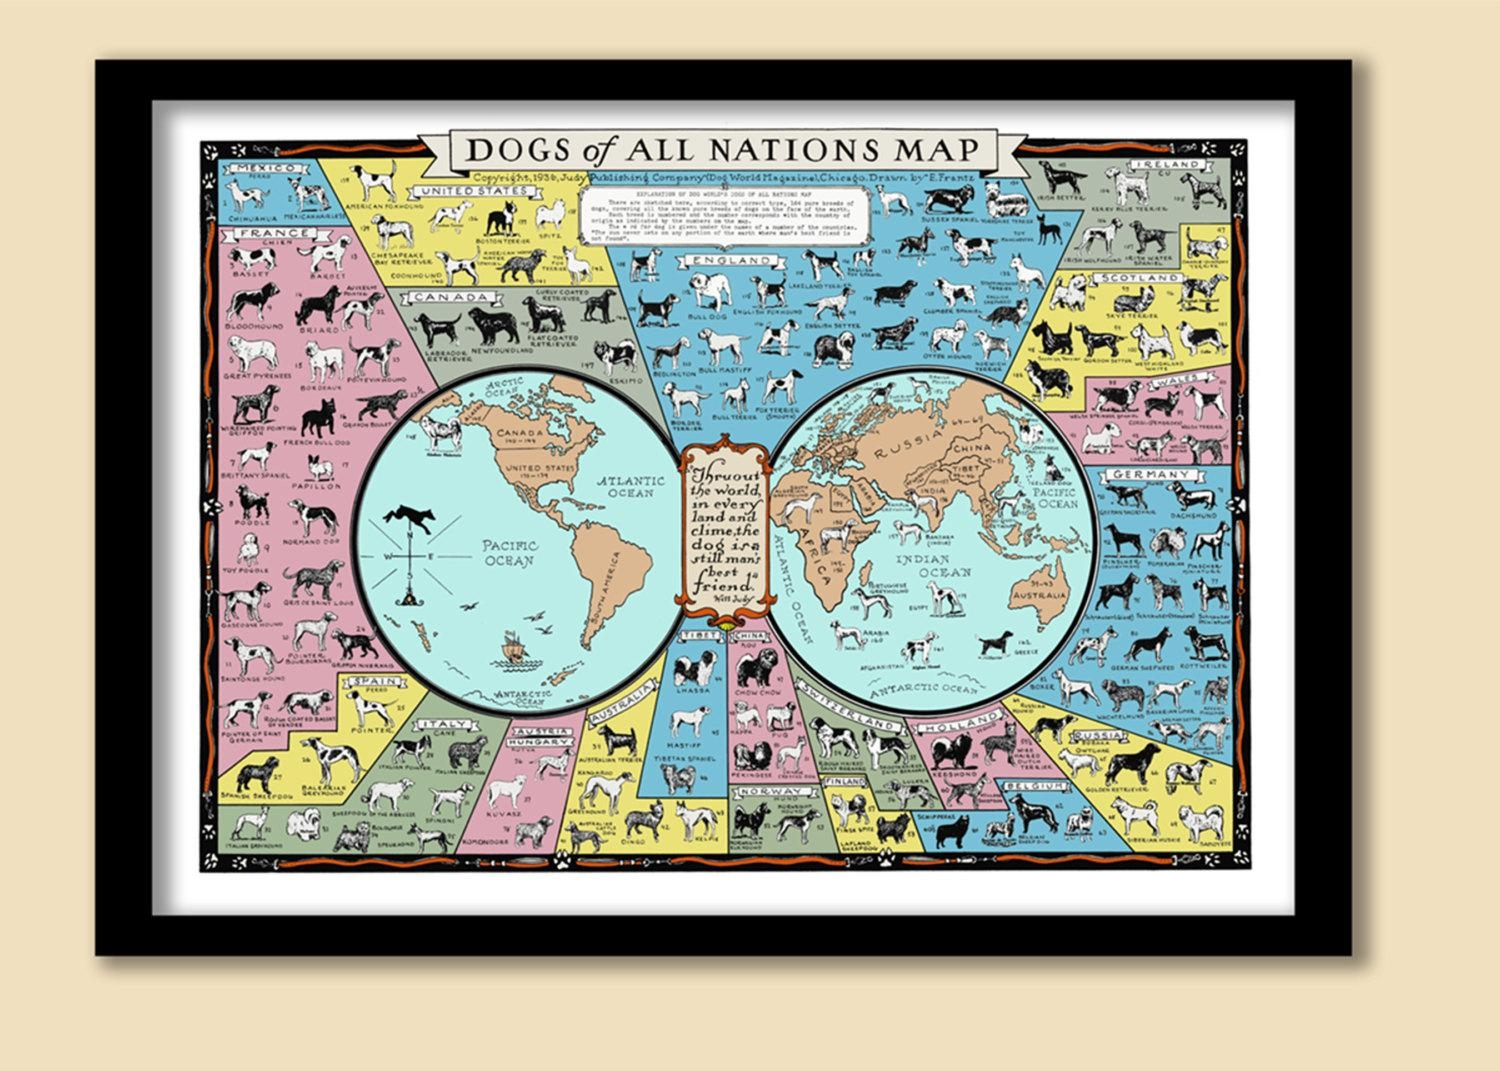 Dog Breeds Of The World Vintage Map / Wall Chart (View 14 of 20)